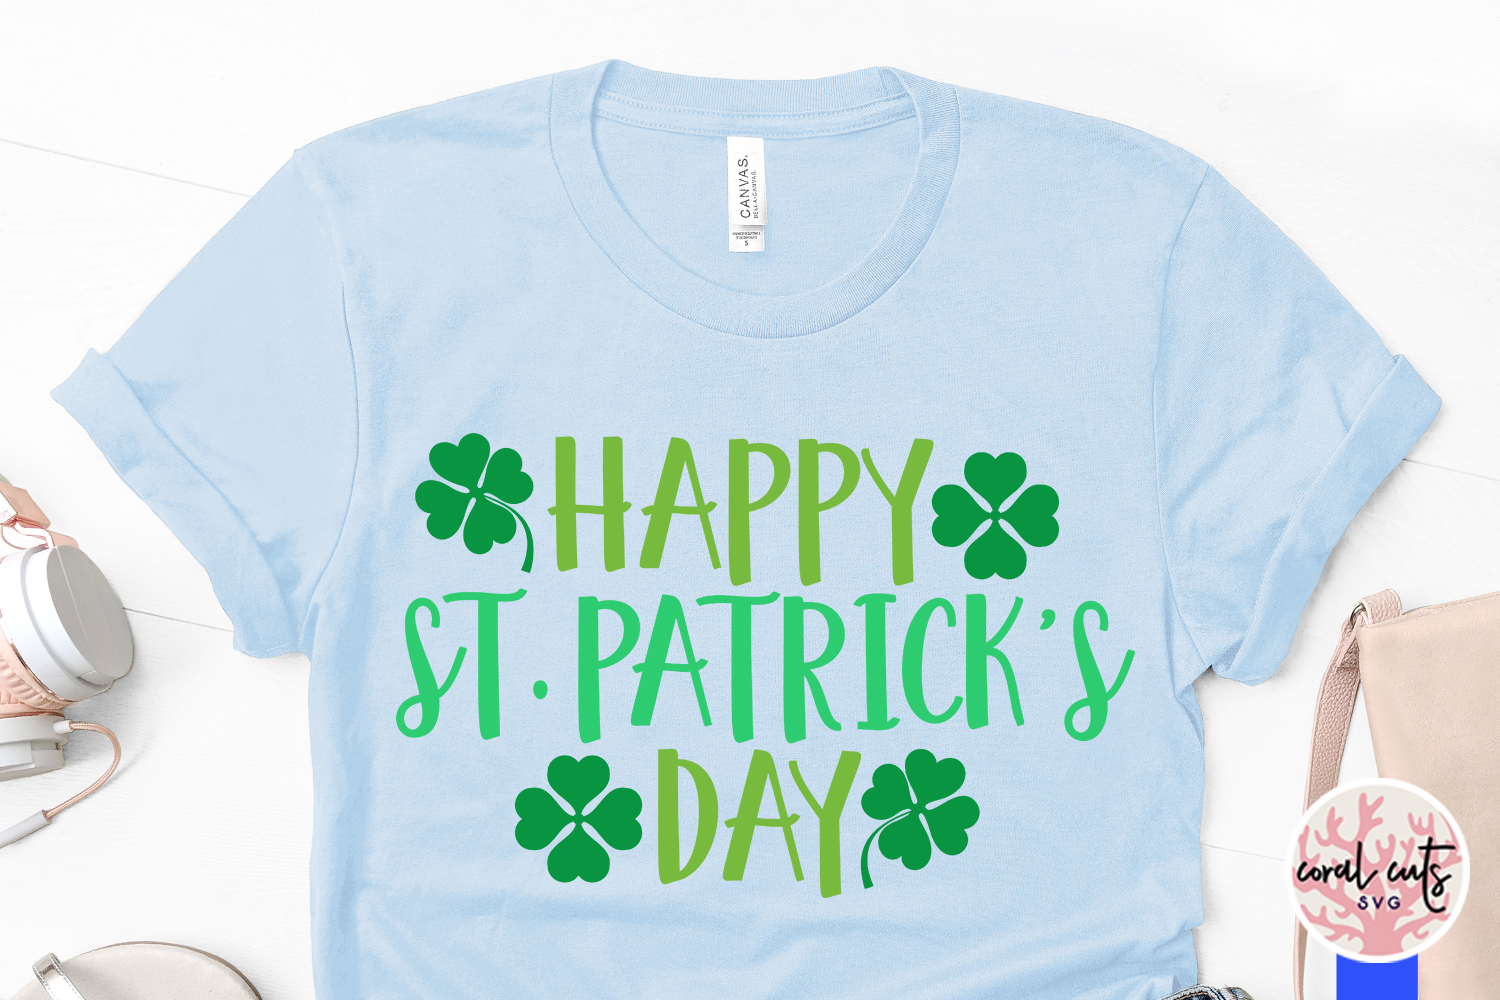 Happy st. patrick's day - St. Patrick's Day SVG EPS DXF PNG example image 3